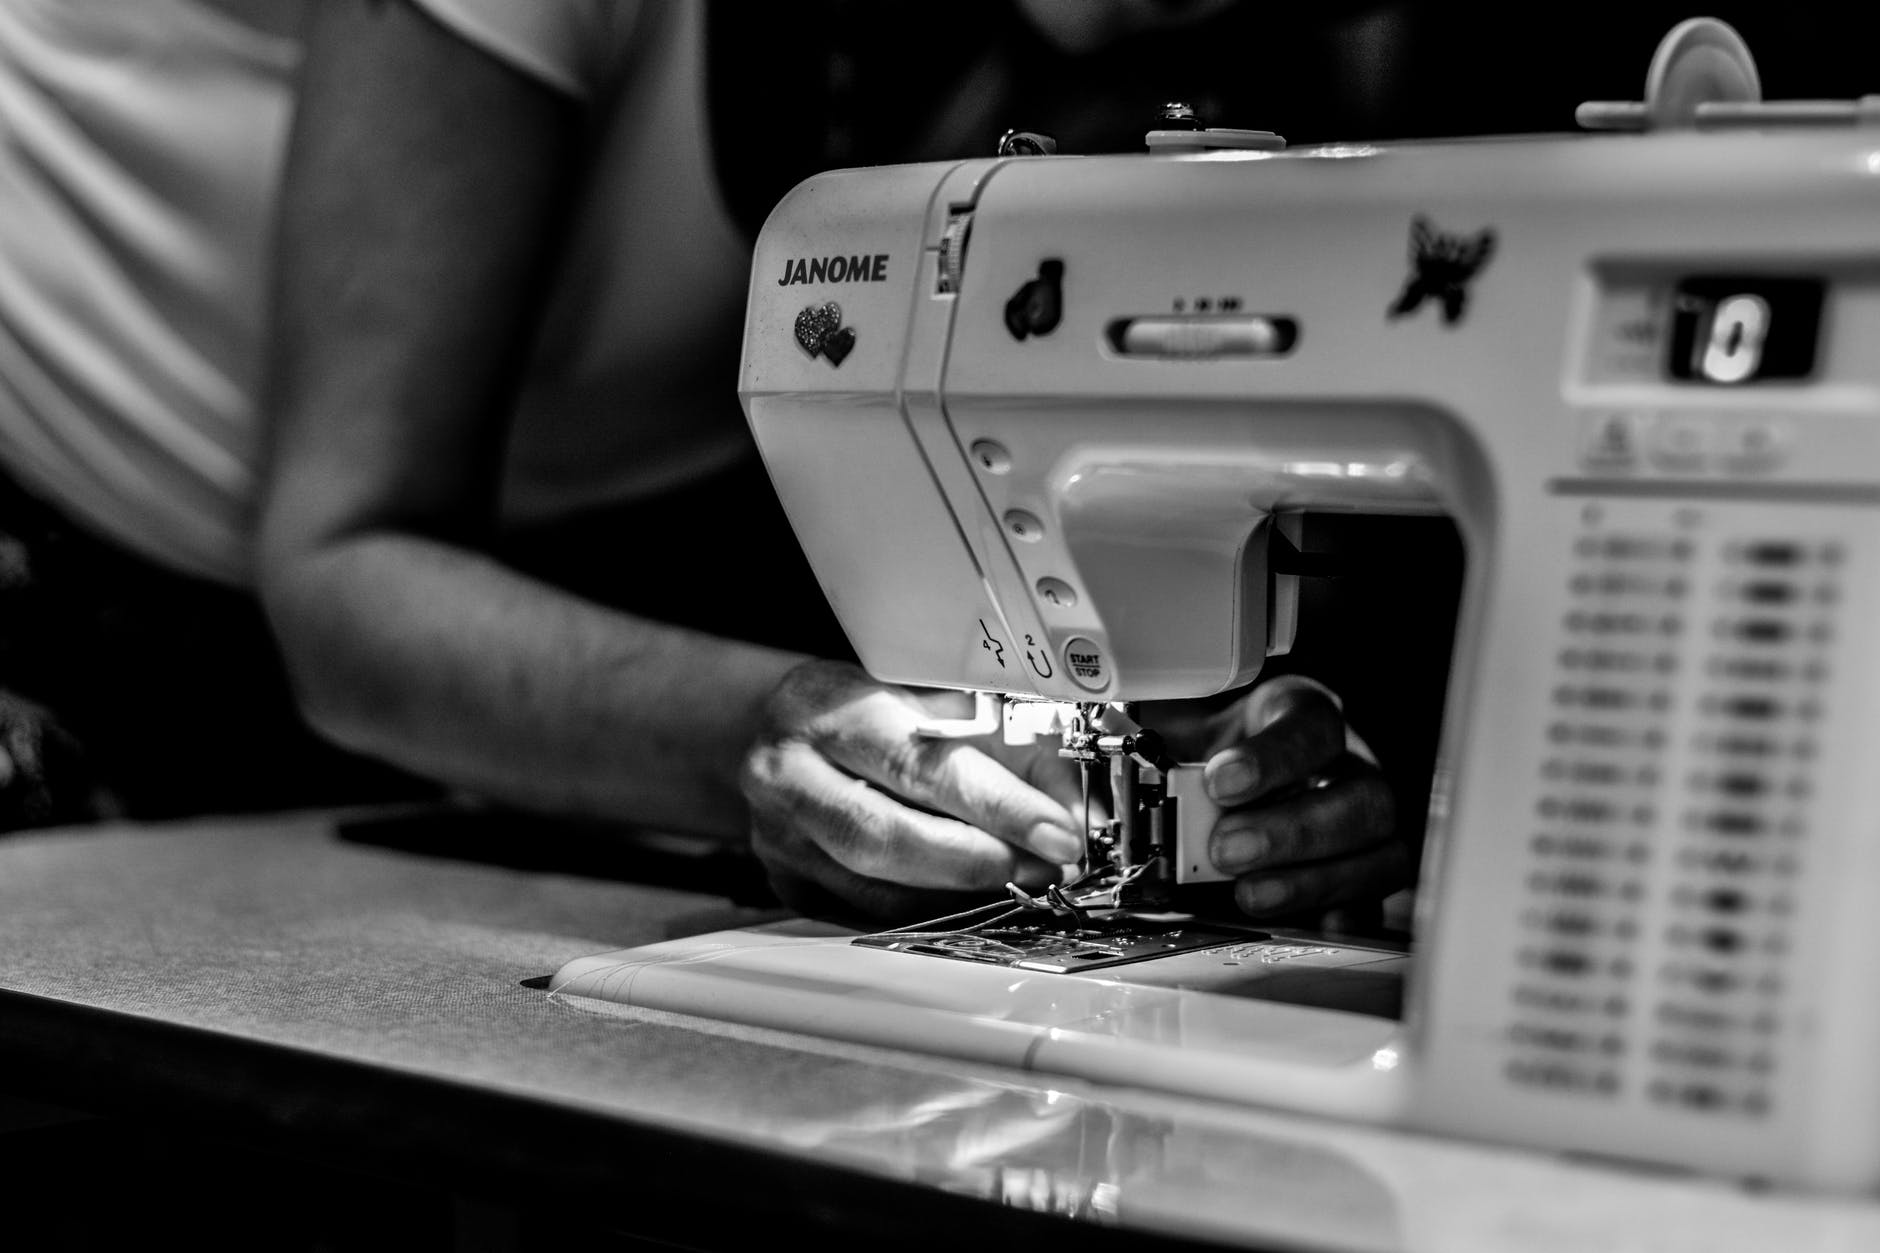 Sewing machine-Manual, Warranty and Servicing | 7 Things To Know When Buying A Sewing Machine | A Beginners Guide